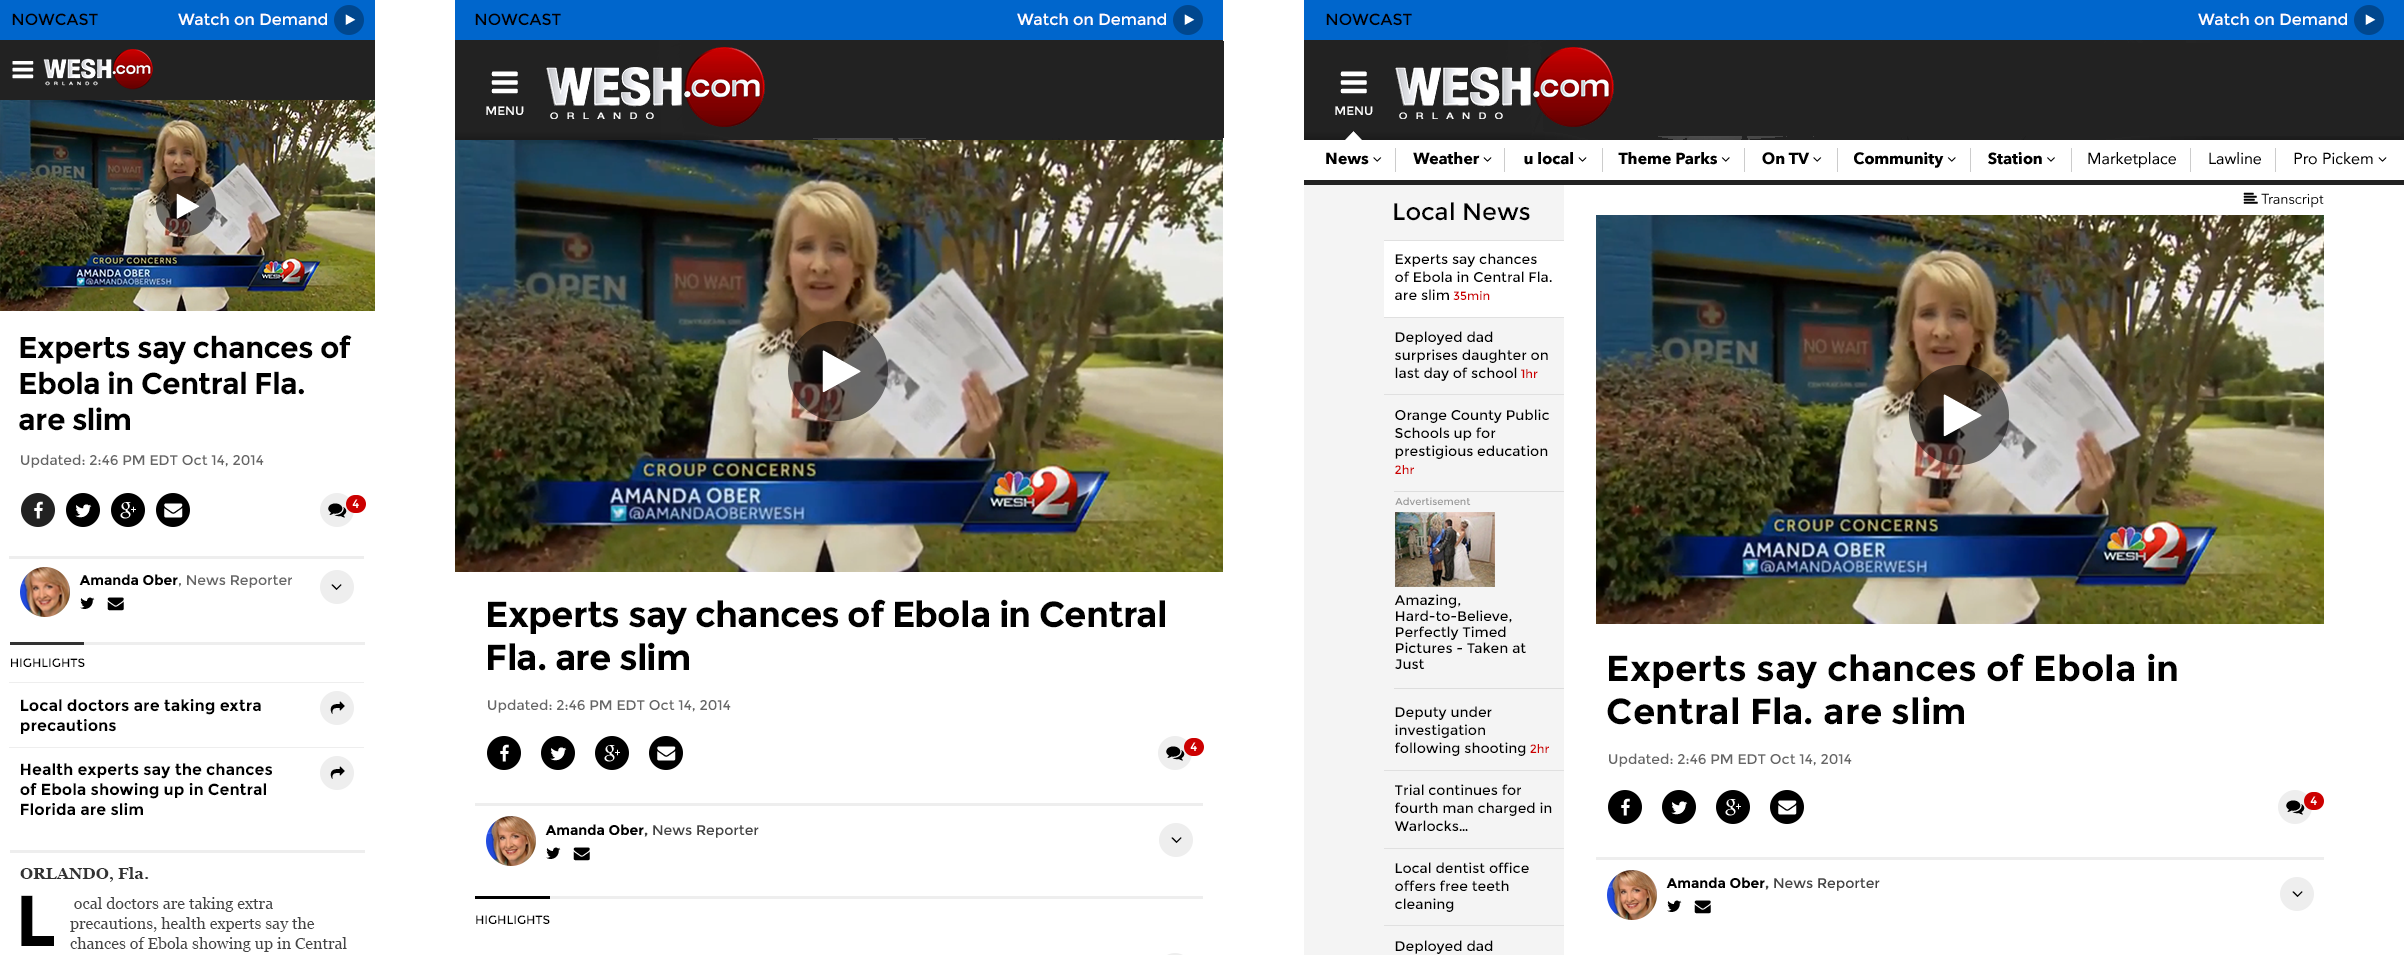 Responsive View of a Lede Story